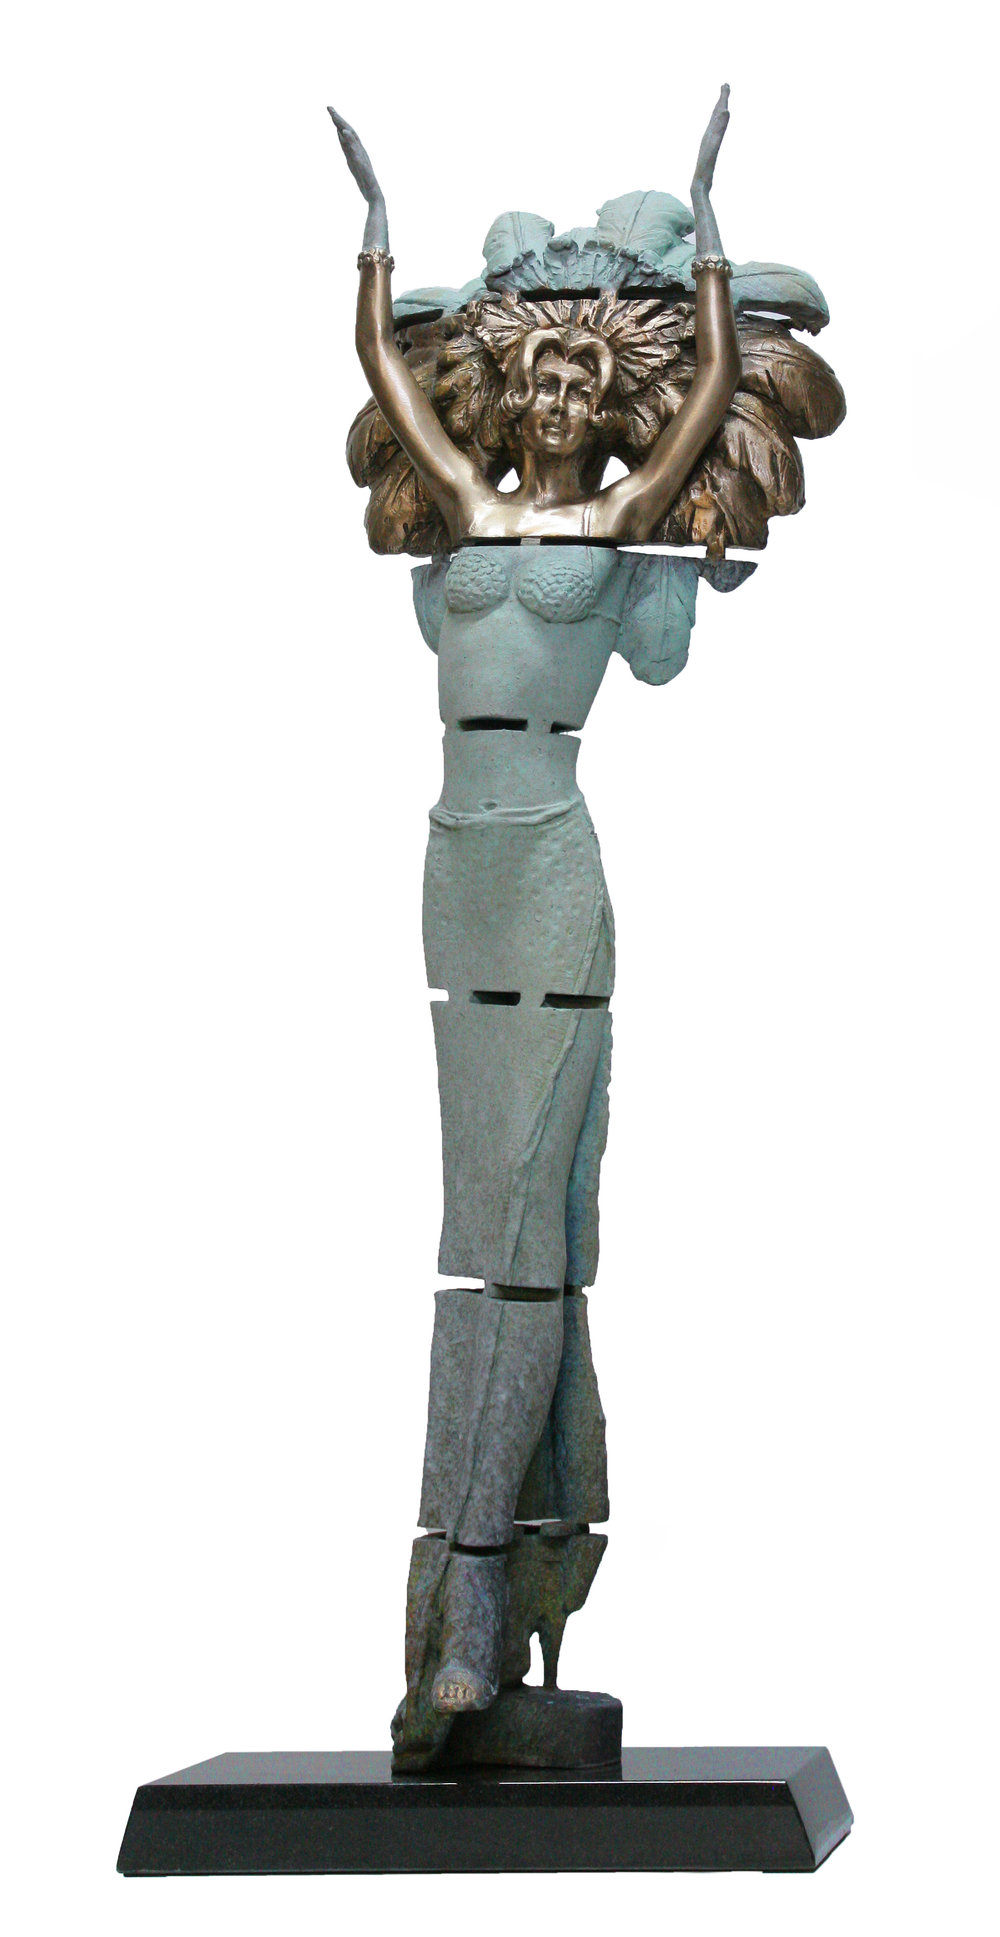 Carlotta Marquette 85 cms high Bronze on Granite